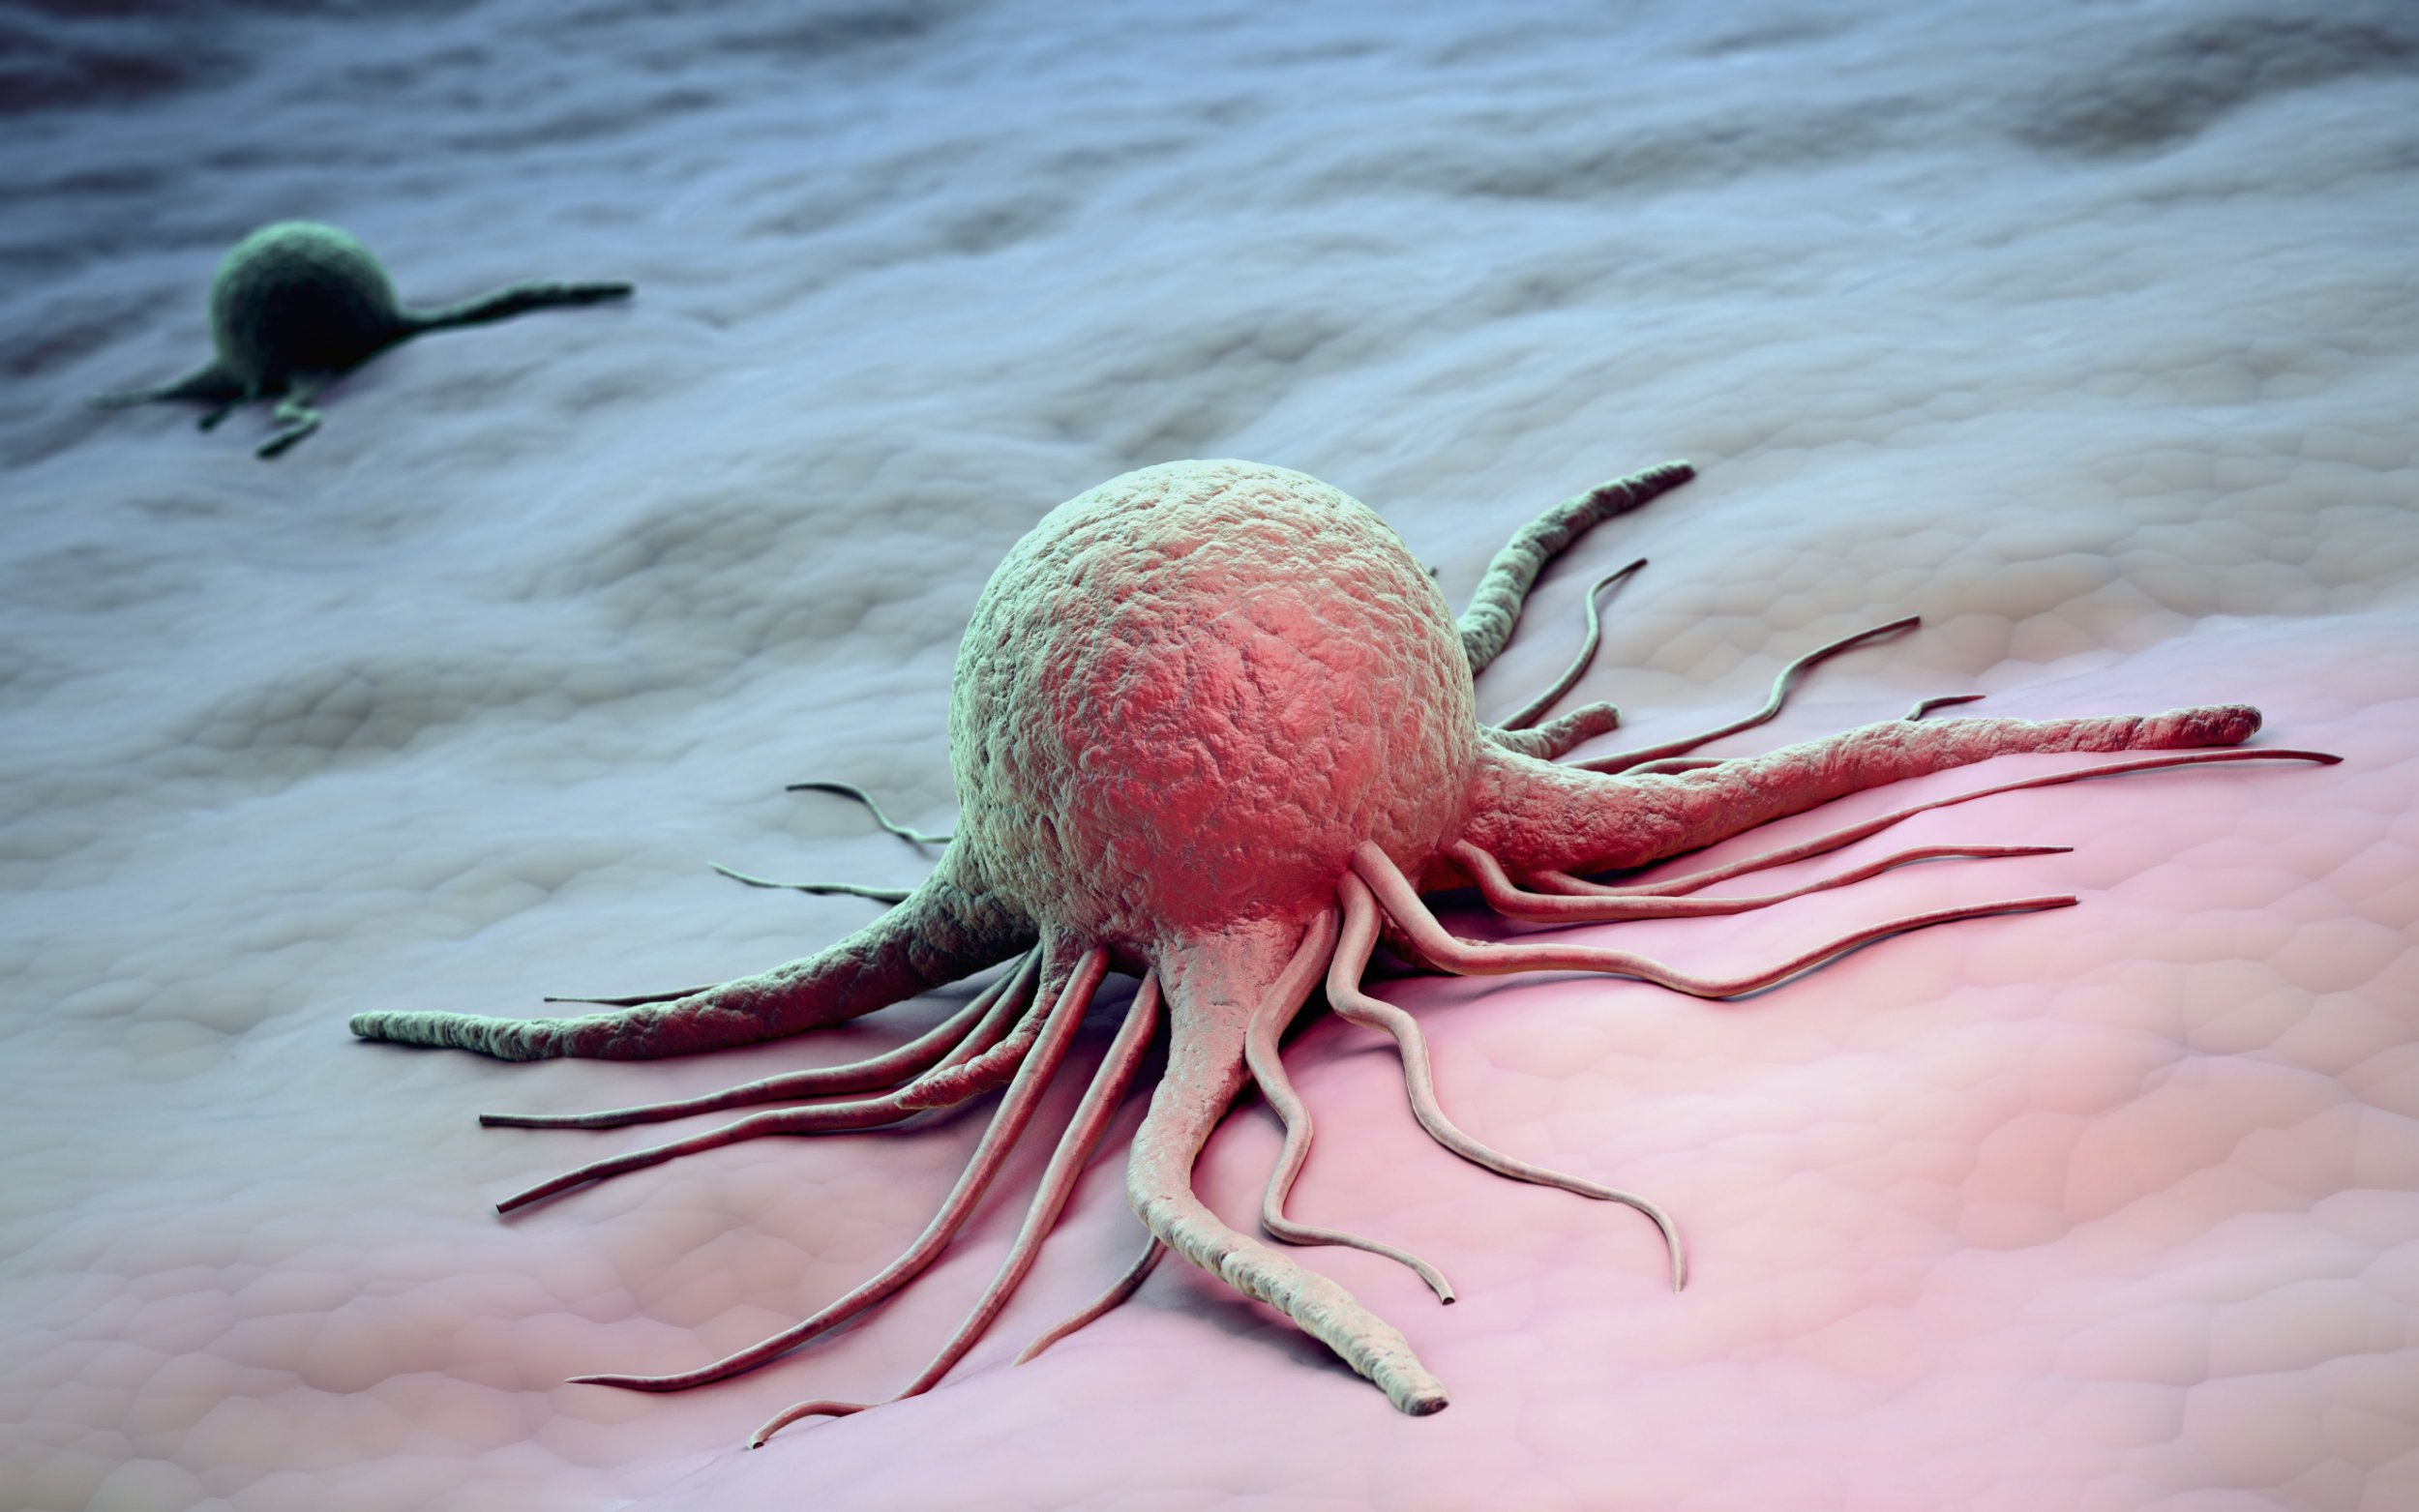 A new 'Trojan horse' cancer drug is showing promise in trials, researchers say